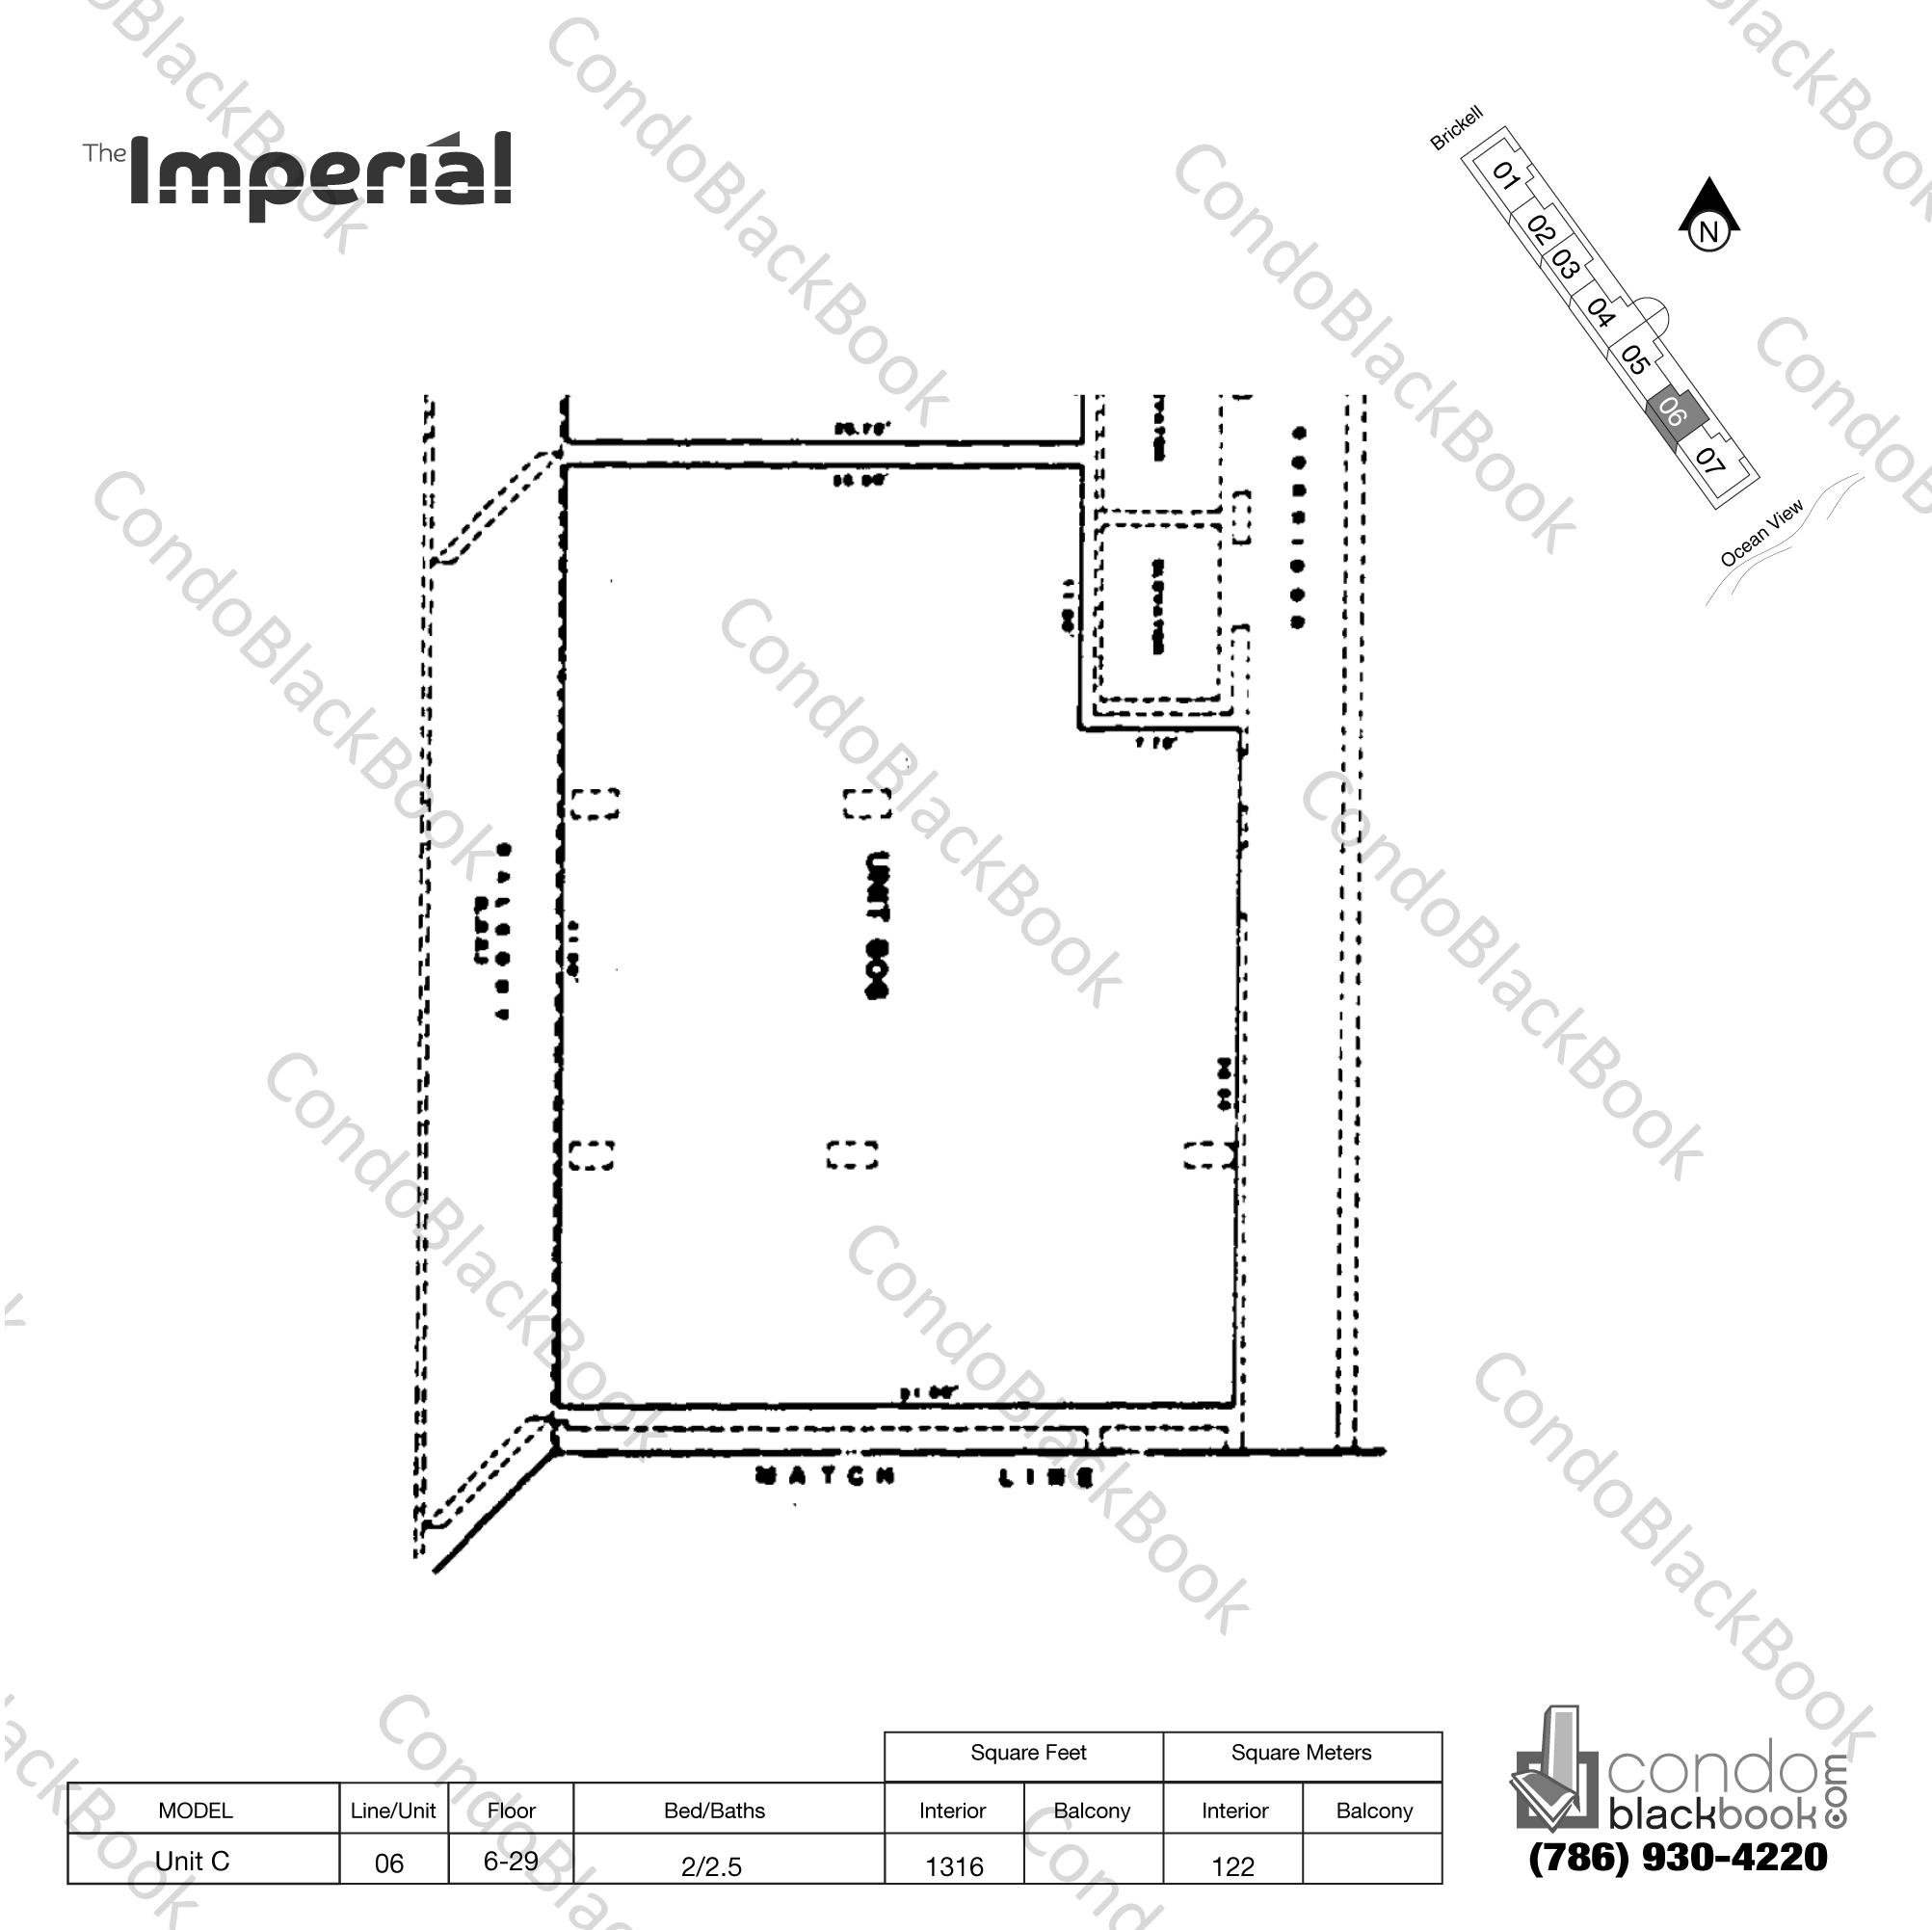 Floor plan for Imperial at Brickell Brickell Miami, model Unit C, line 06, 2/2.5 bedrooms, 1316 sq ft